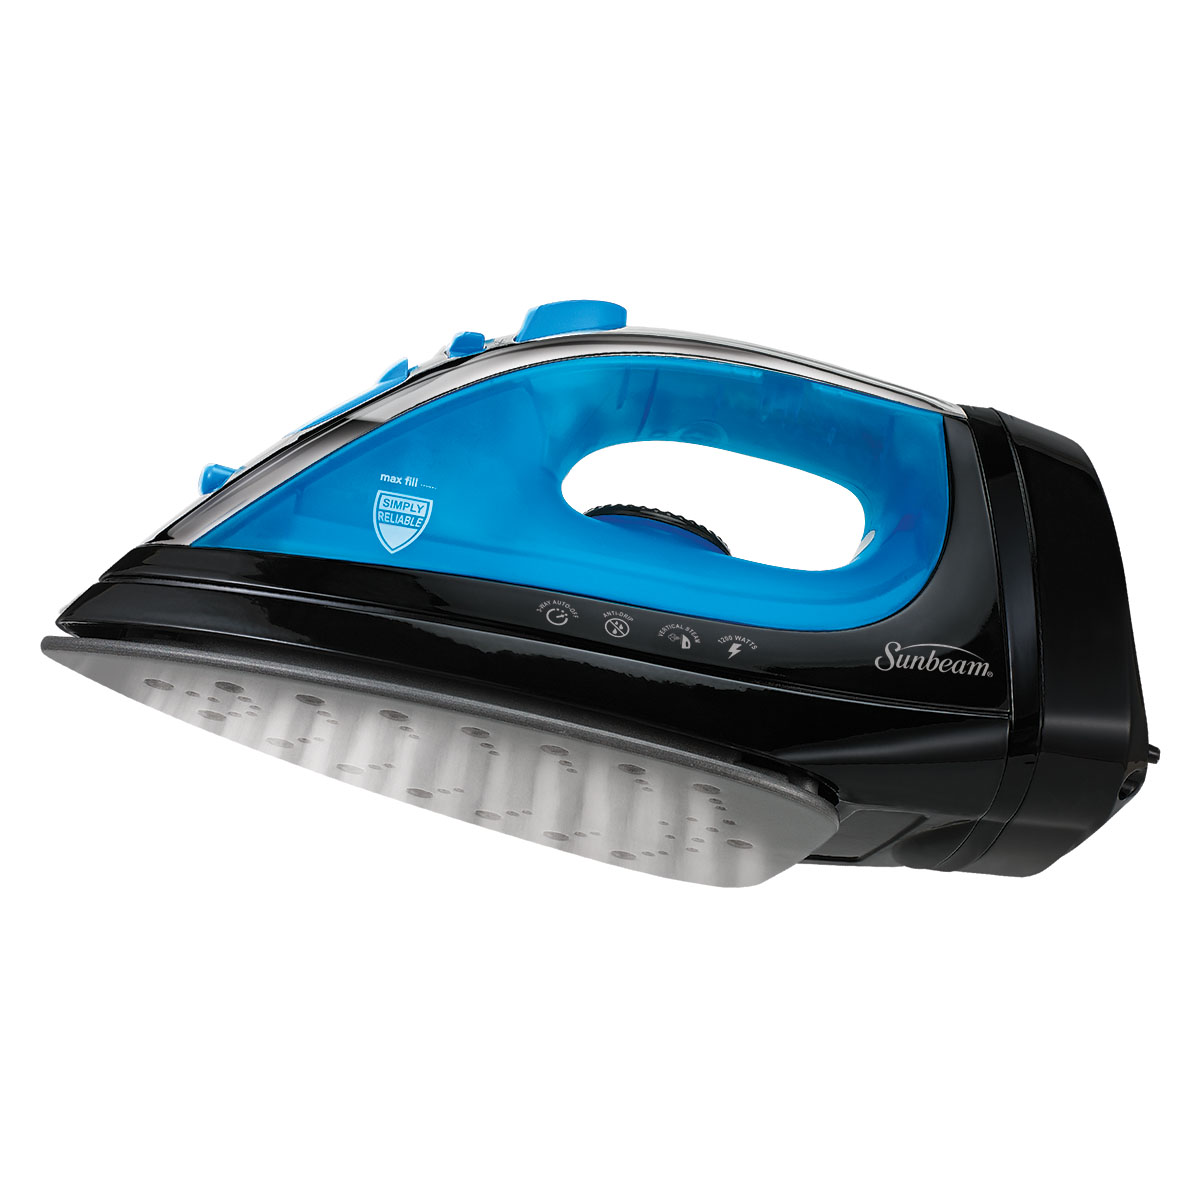 Sunbeam Steam Master Iron with Retractable Cord (GCSBCL-202-000)